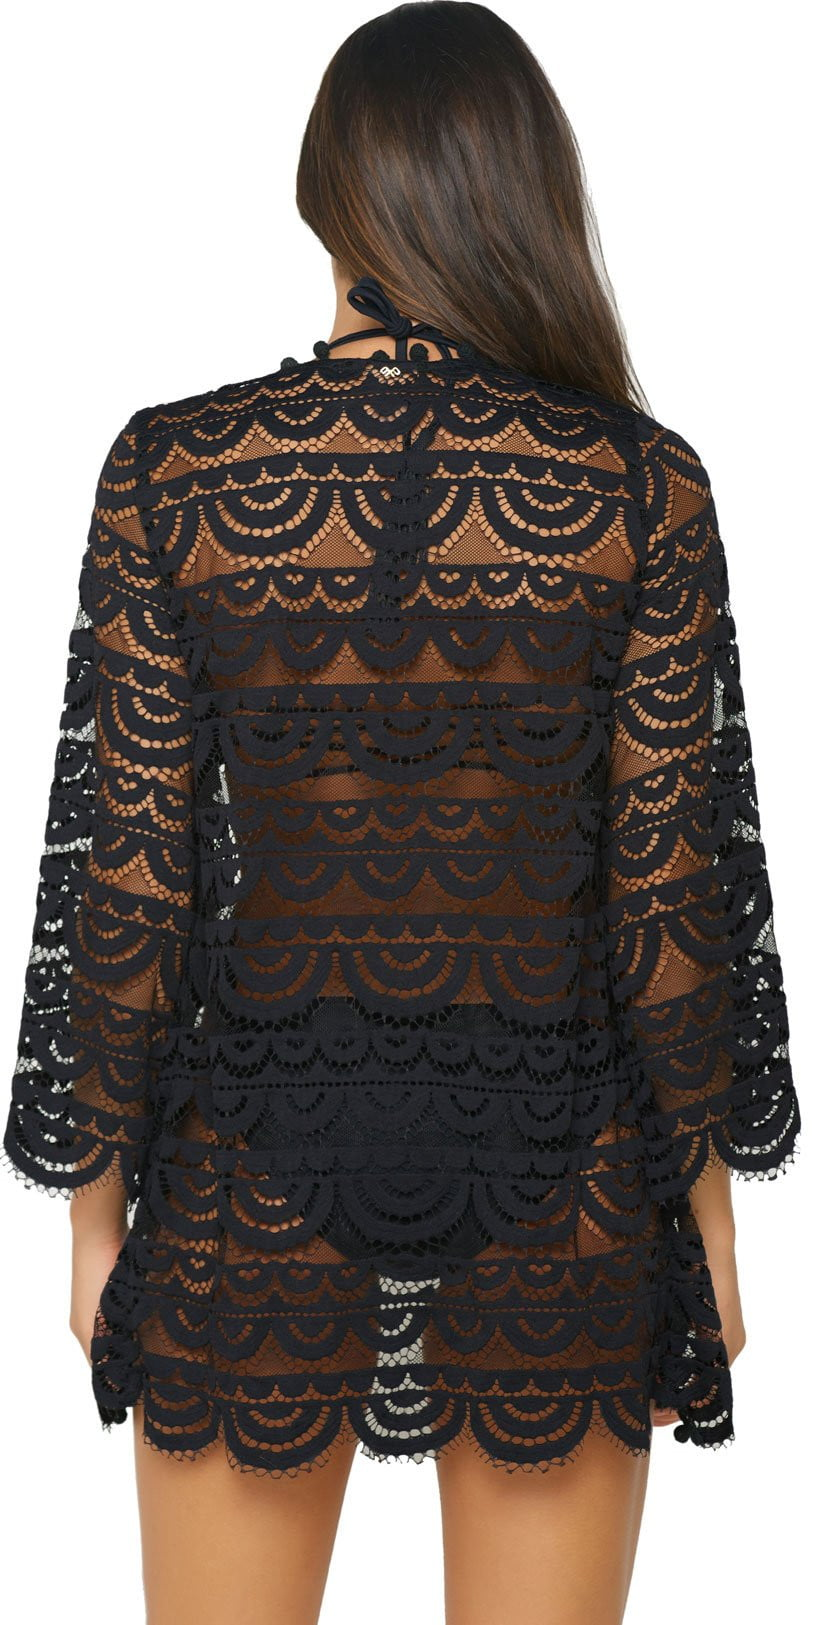 PilyQ Black Lace Noah Tunic BKG-445D back studio